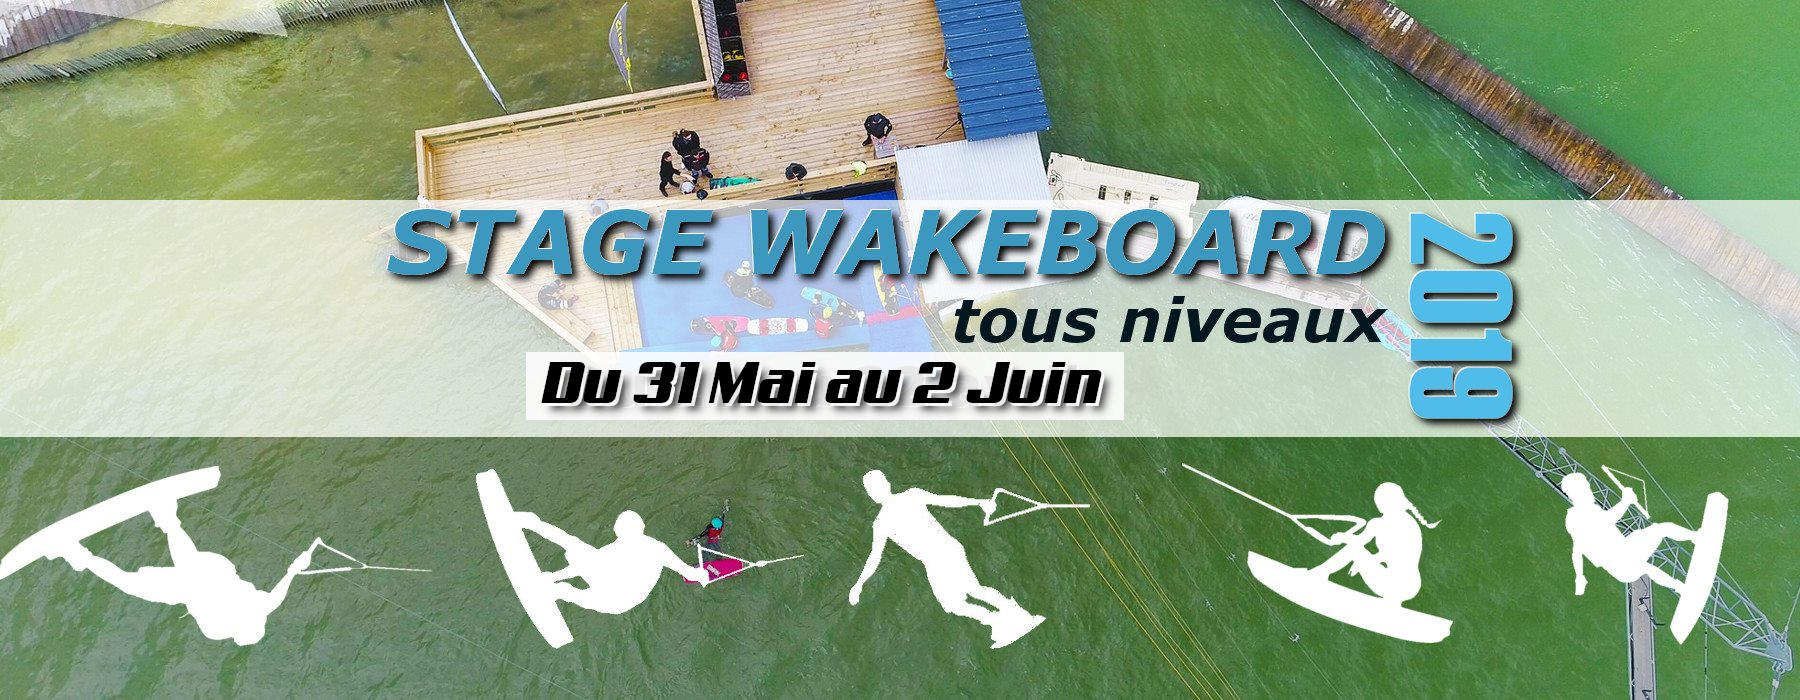 Stage wakeboard tous niveaux